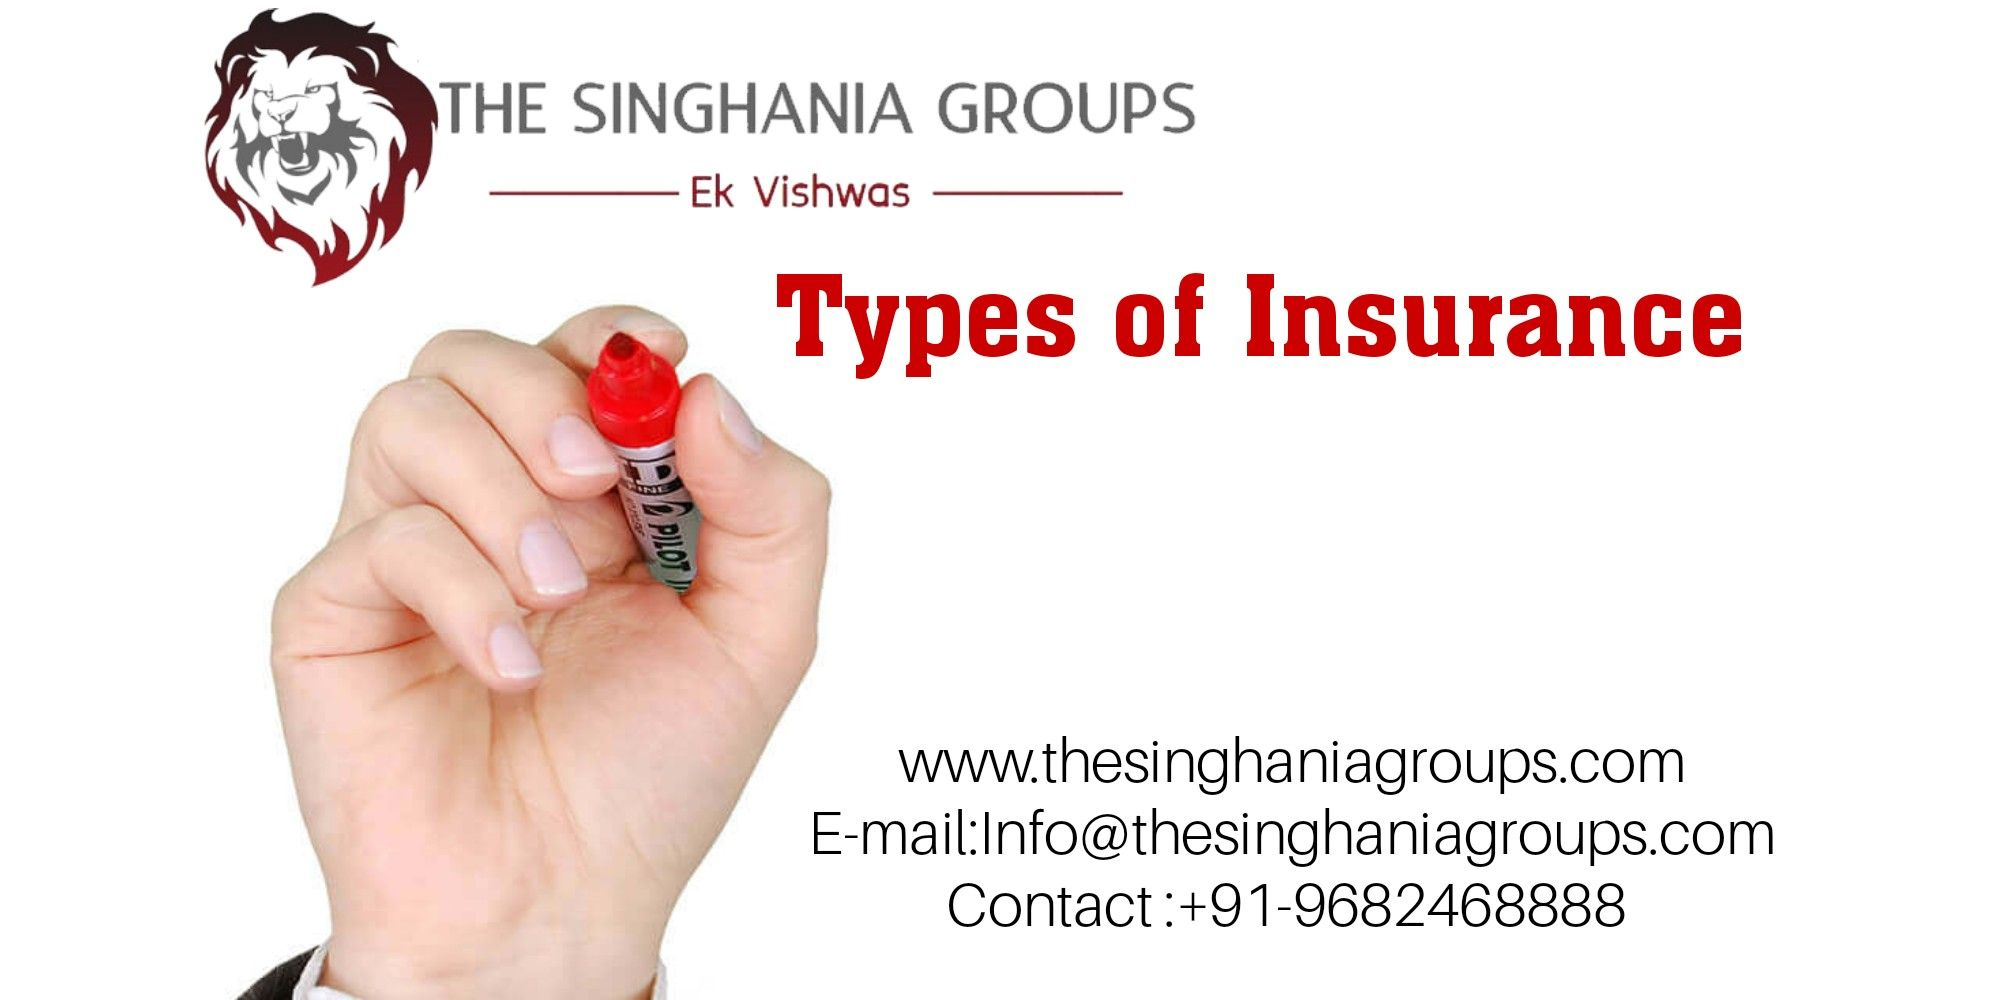 Pin On The Singhania Groups